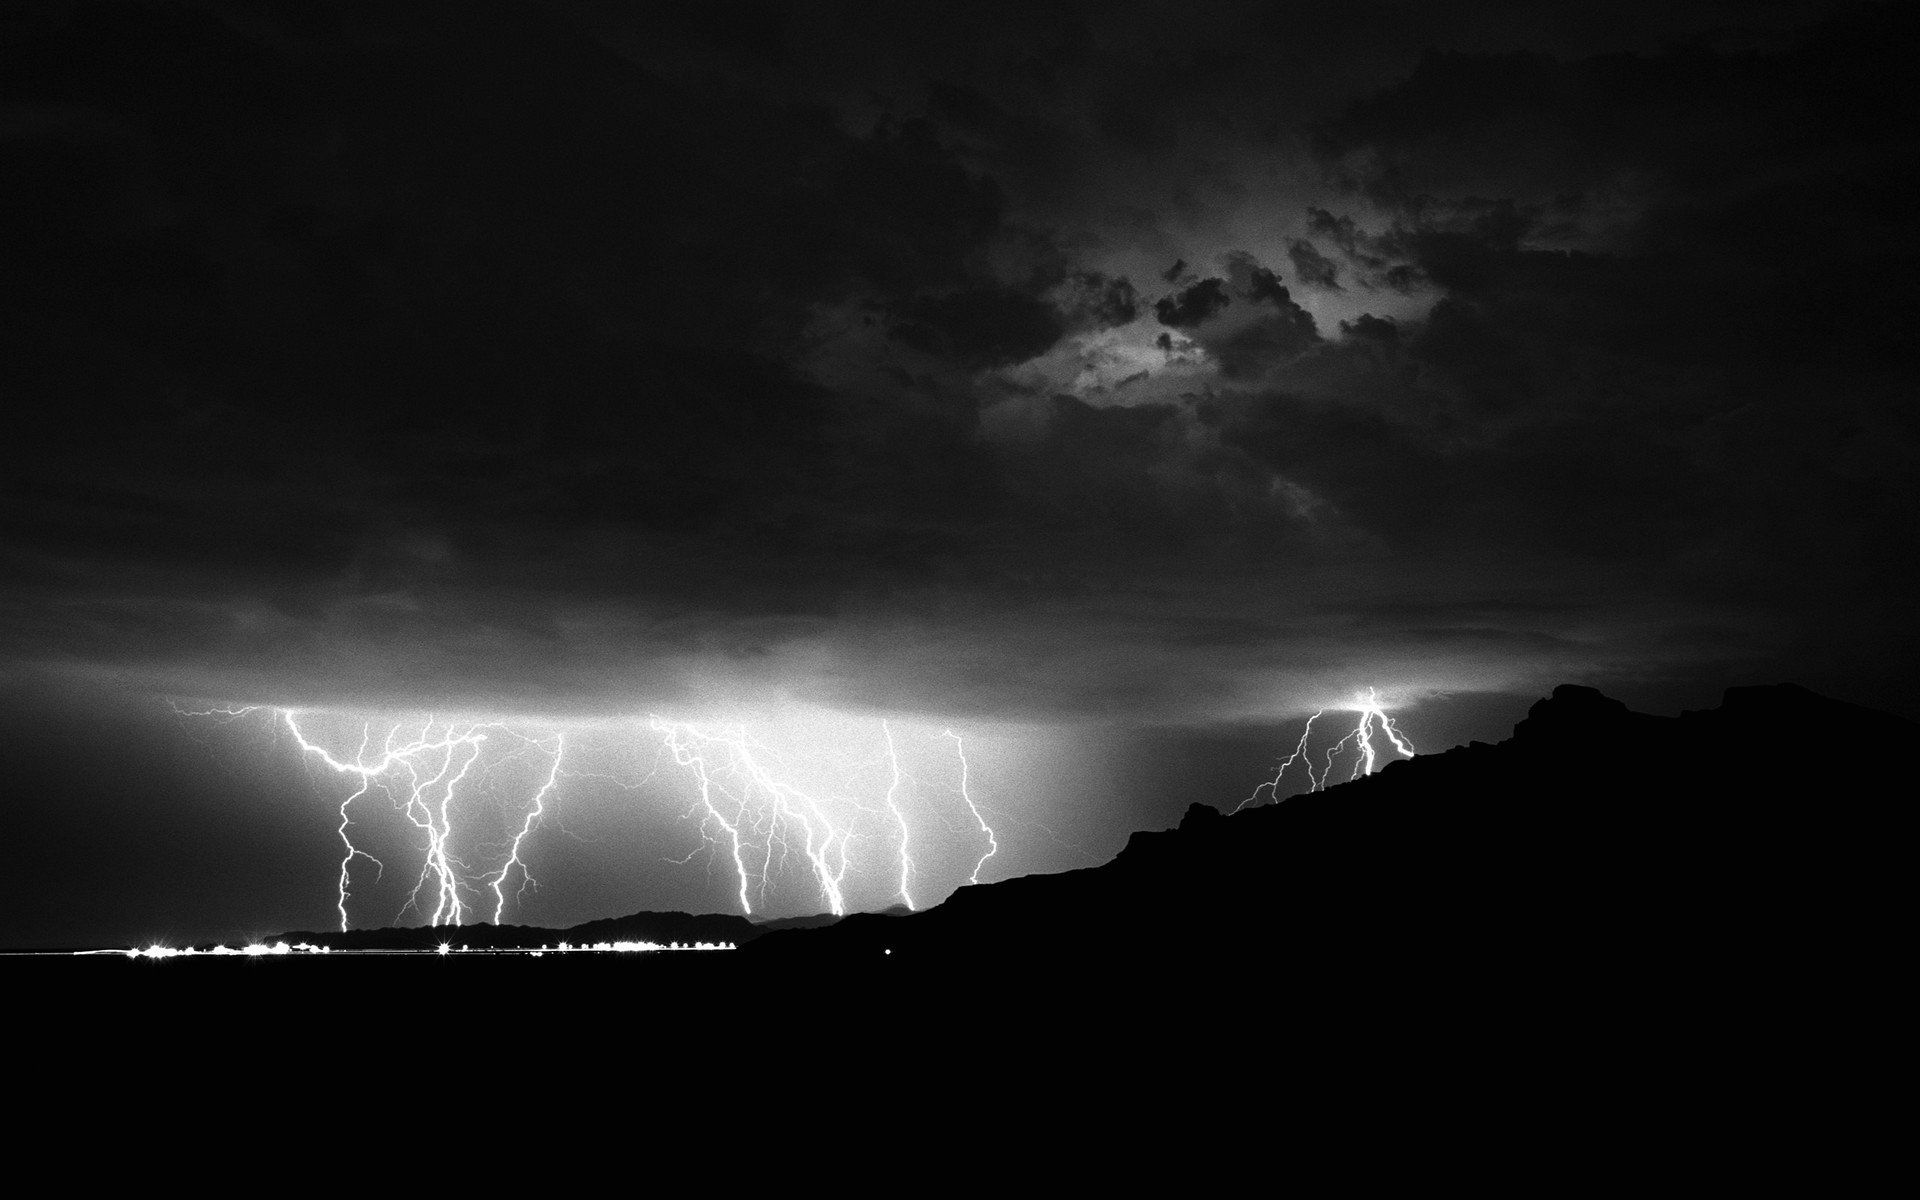 Wallpaper Black And White Storm Lightning Weather Black And